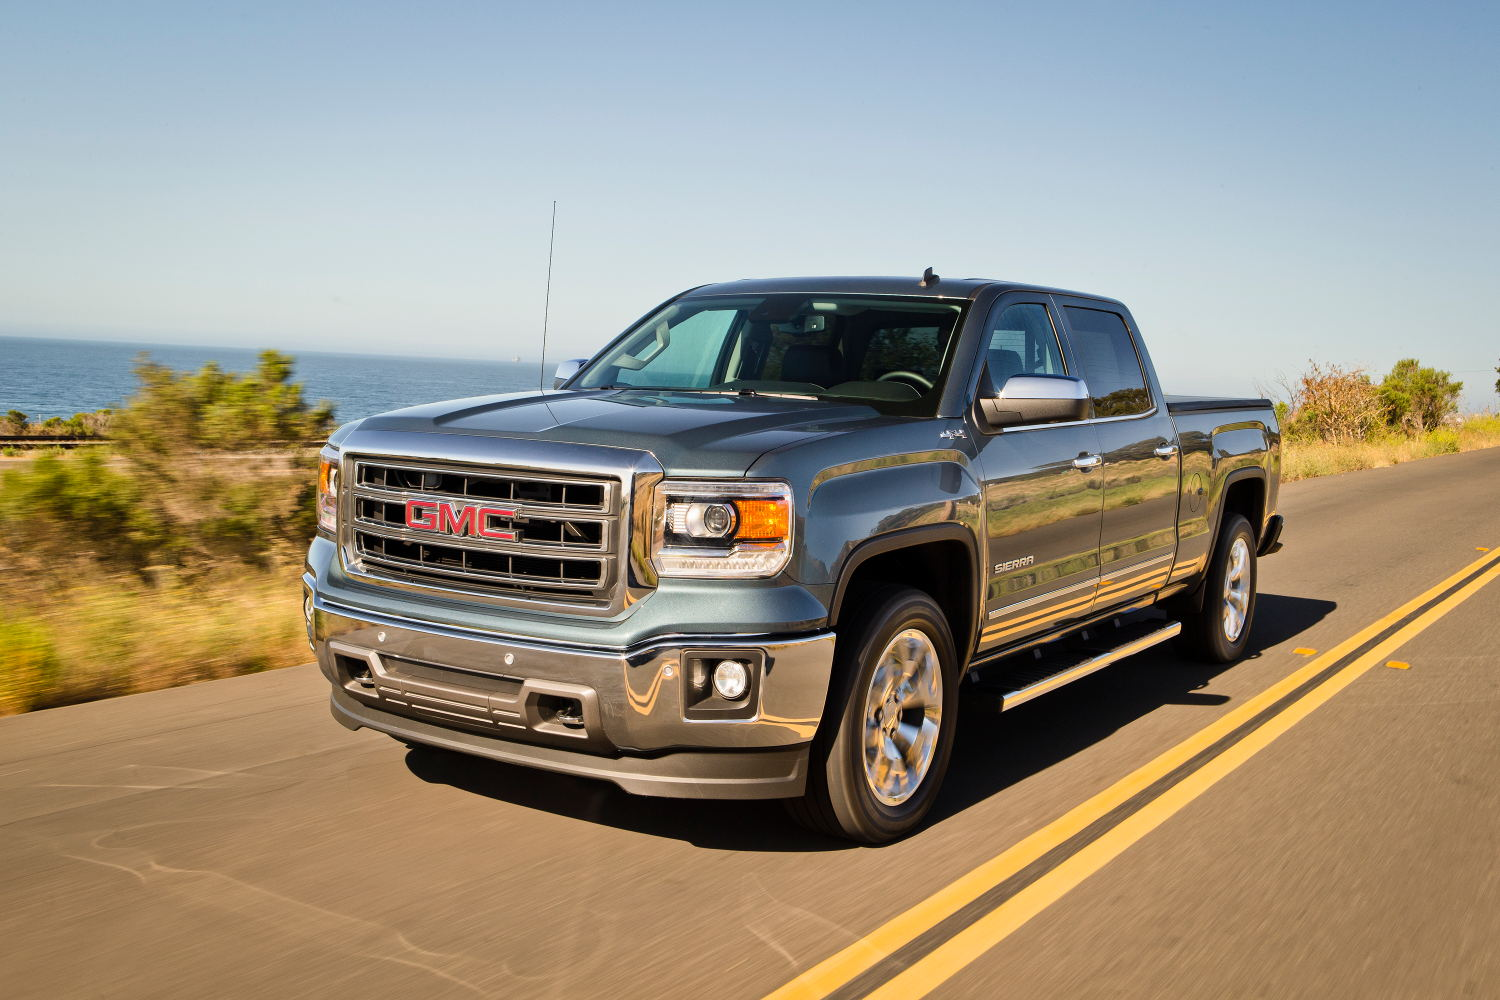 2015 Chevrolet Silverado 1500 Double Cab >> Comparison - Chevrolet Silverado 1500 Double Cab LTZ 2015 ...